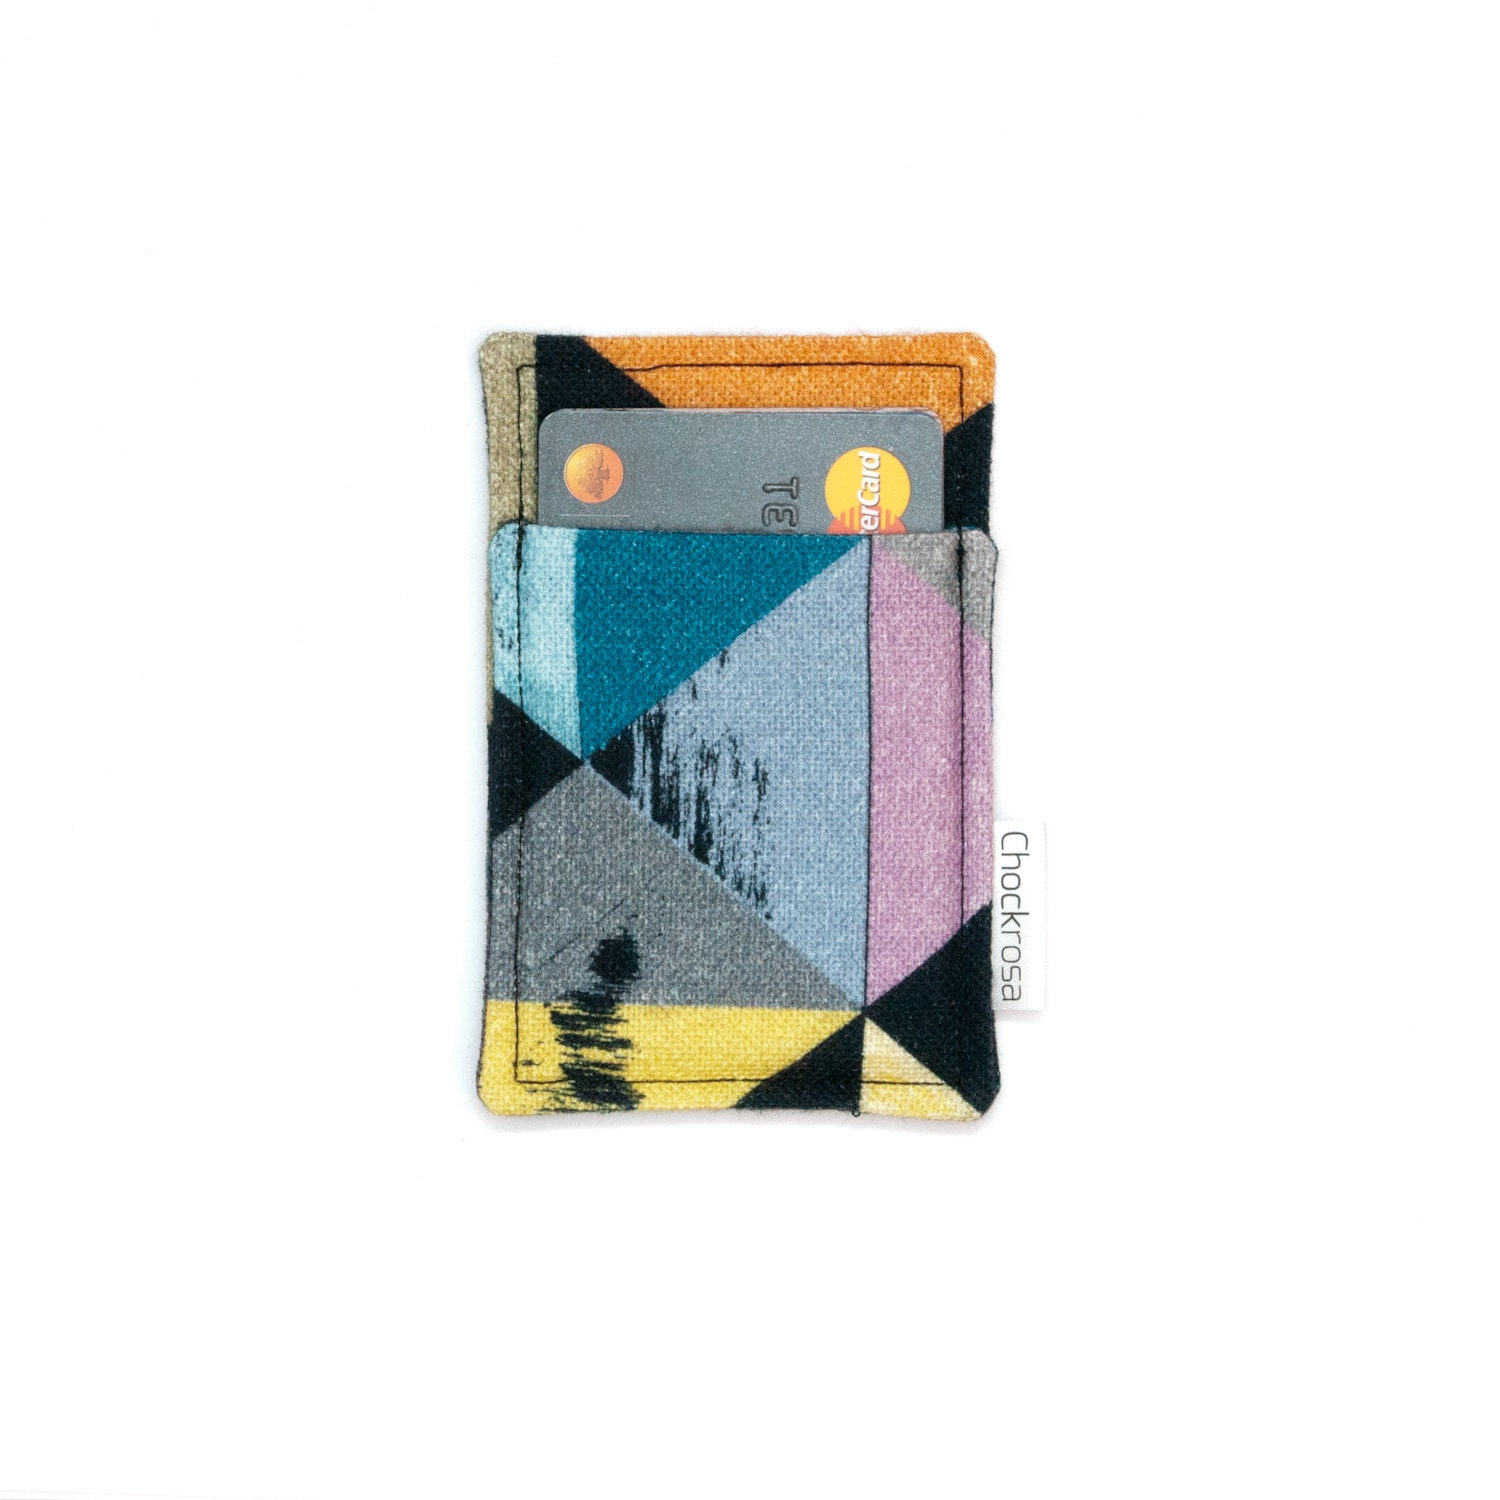 Credit card wallet Minimalist wallet Slim business card holder